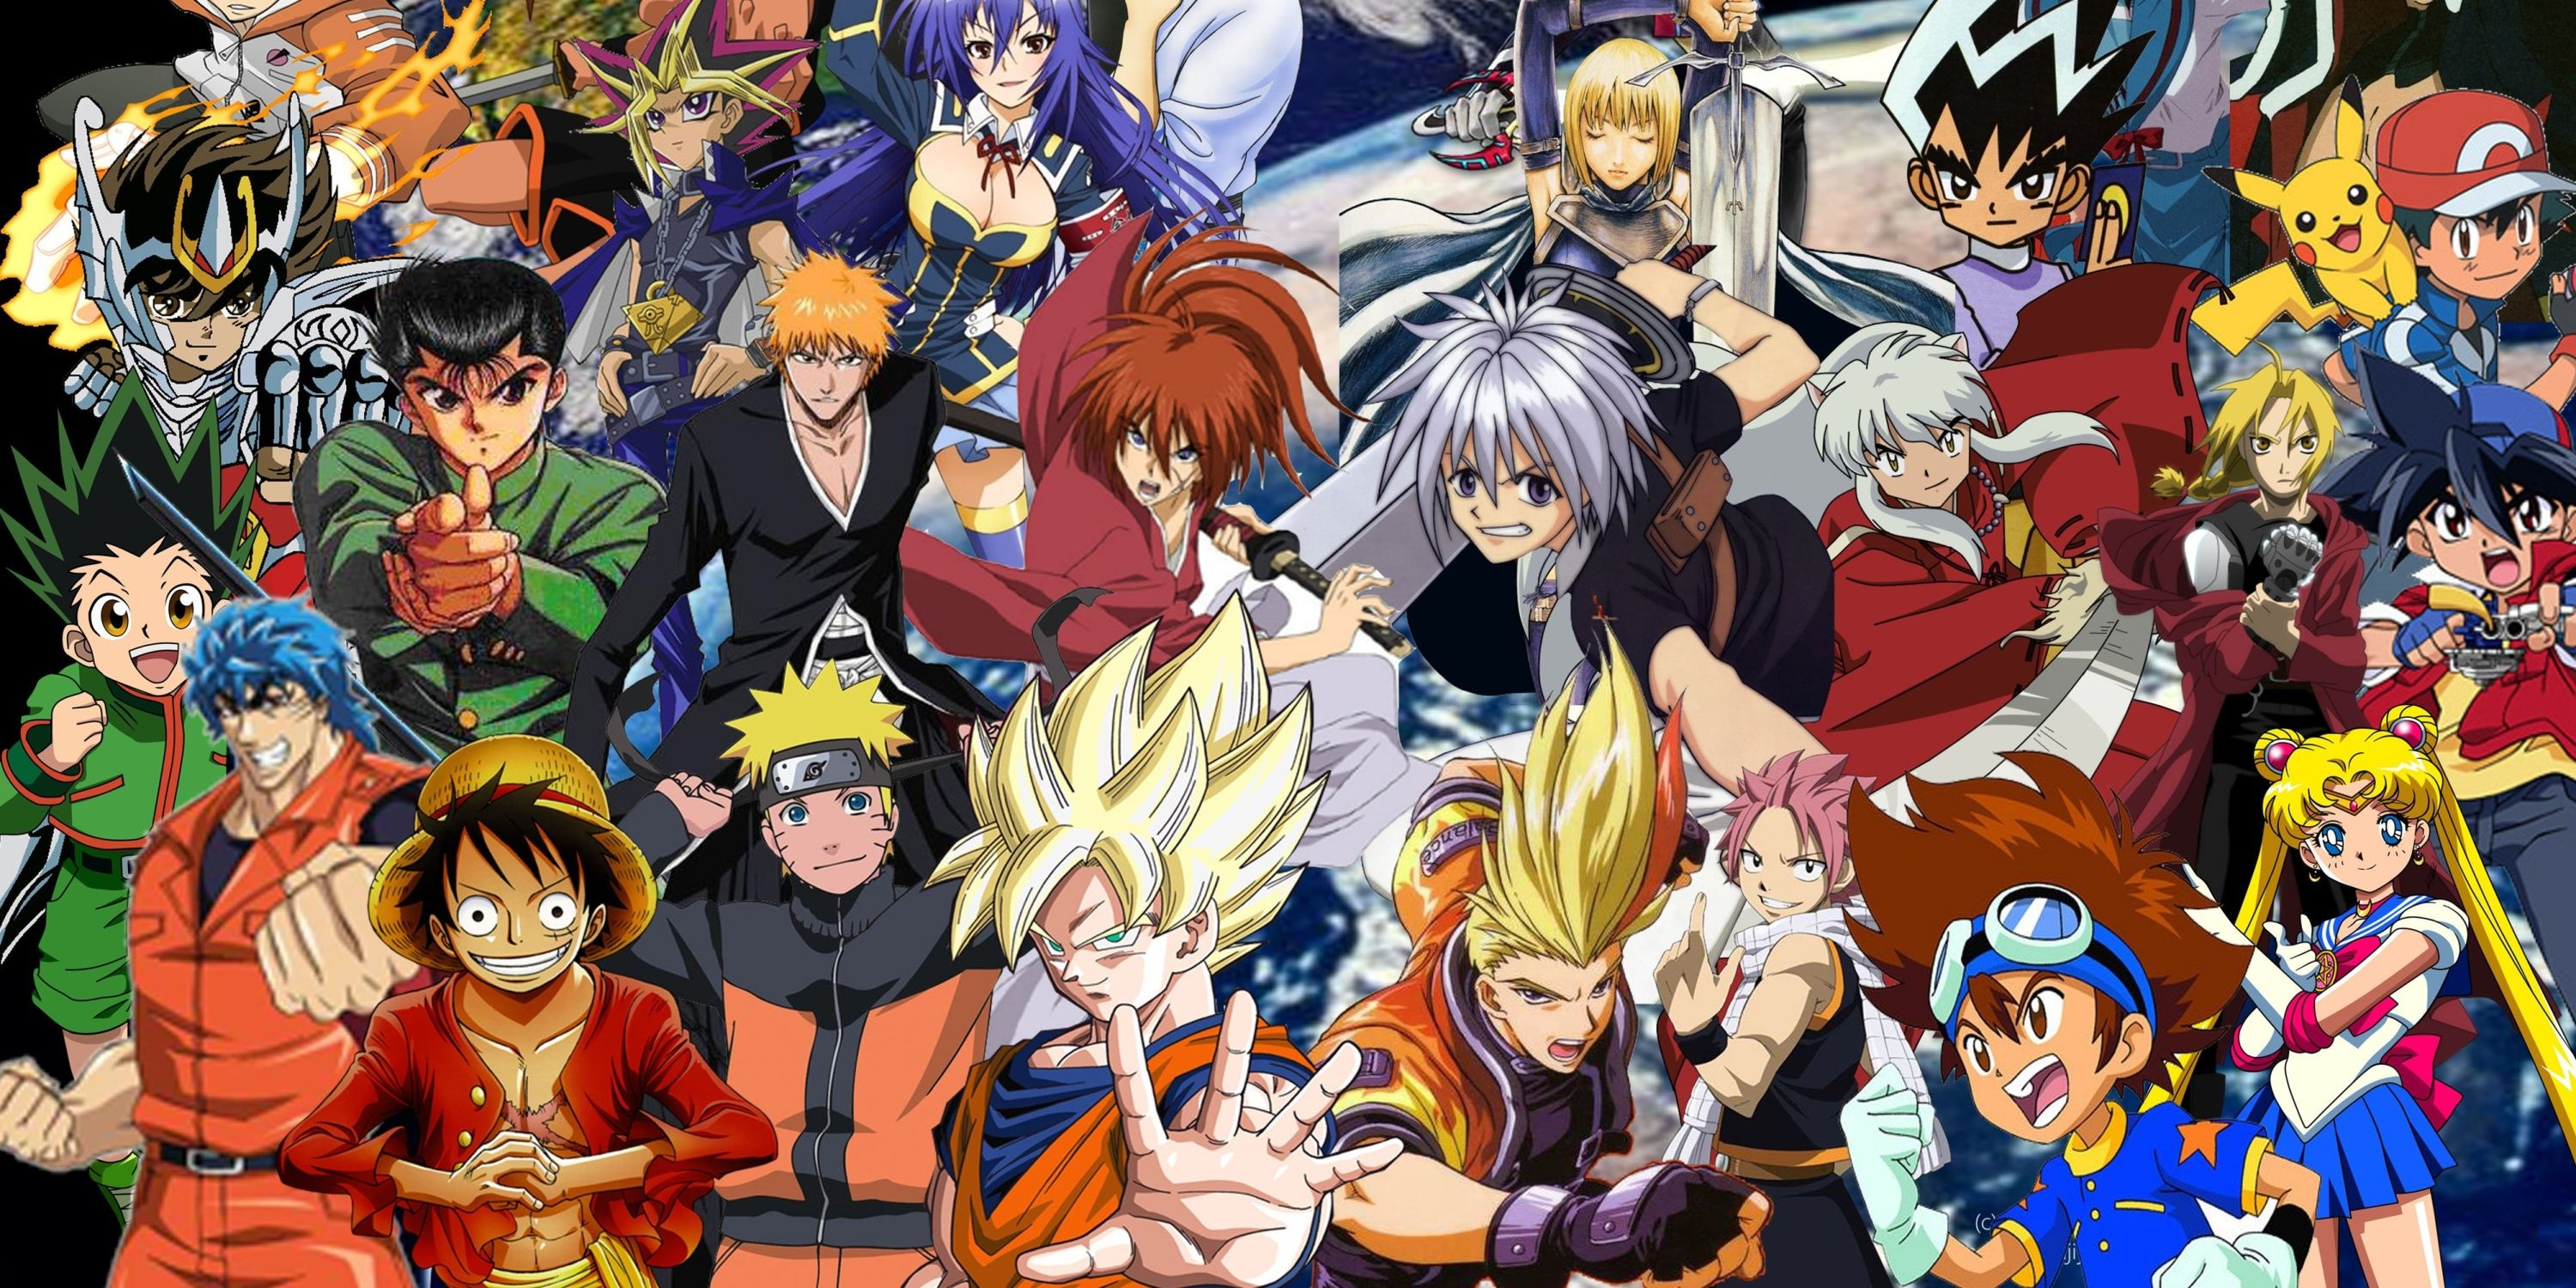 25 of the strongest anime characters officially ranked